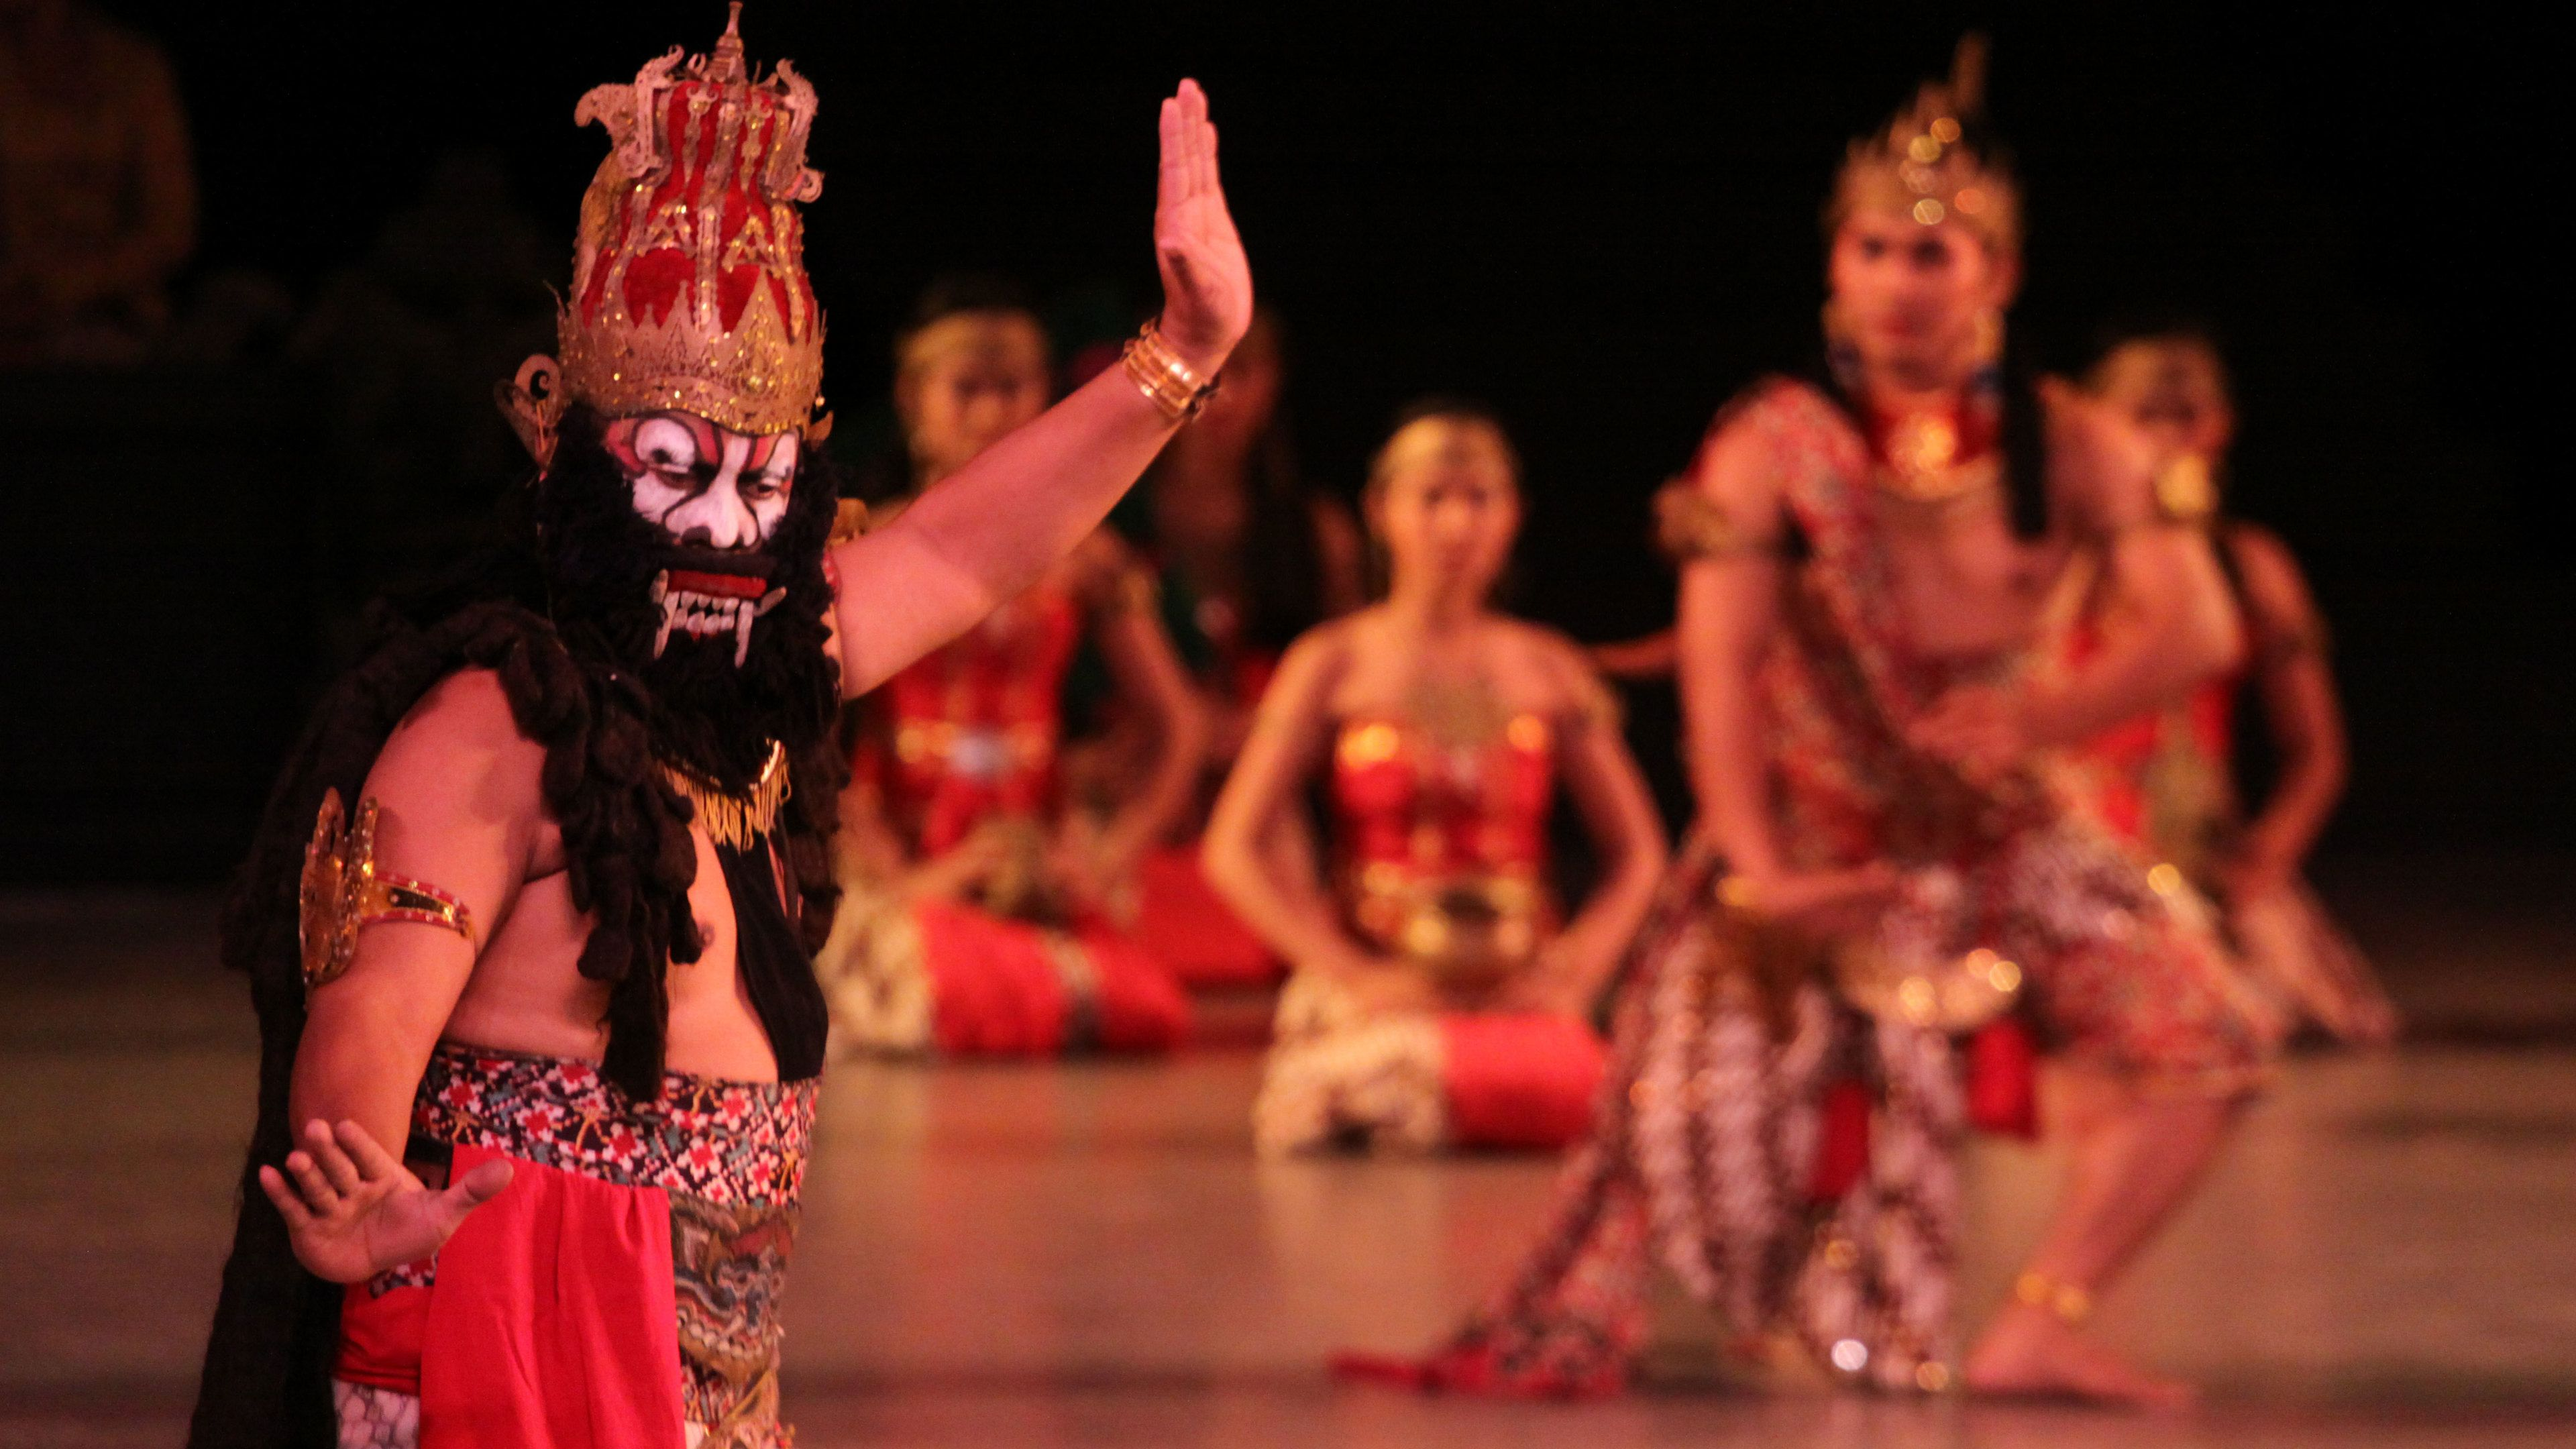 Man in a mask with dancers in the background onstage in Bali